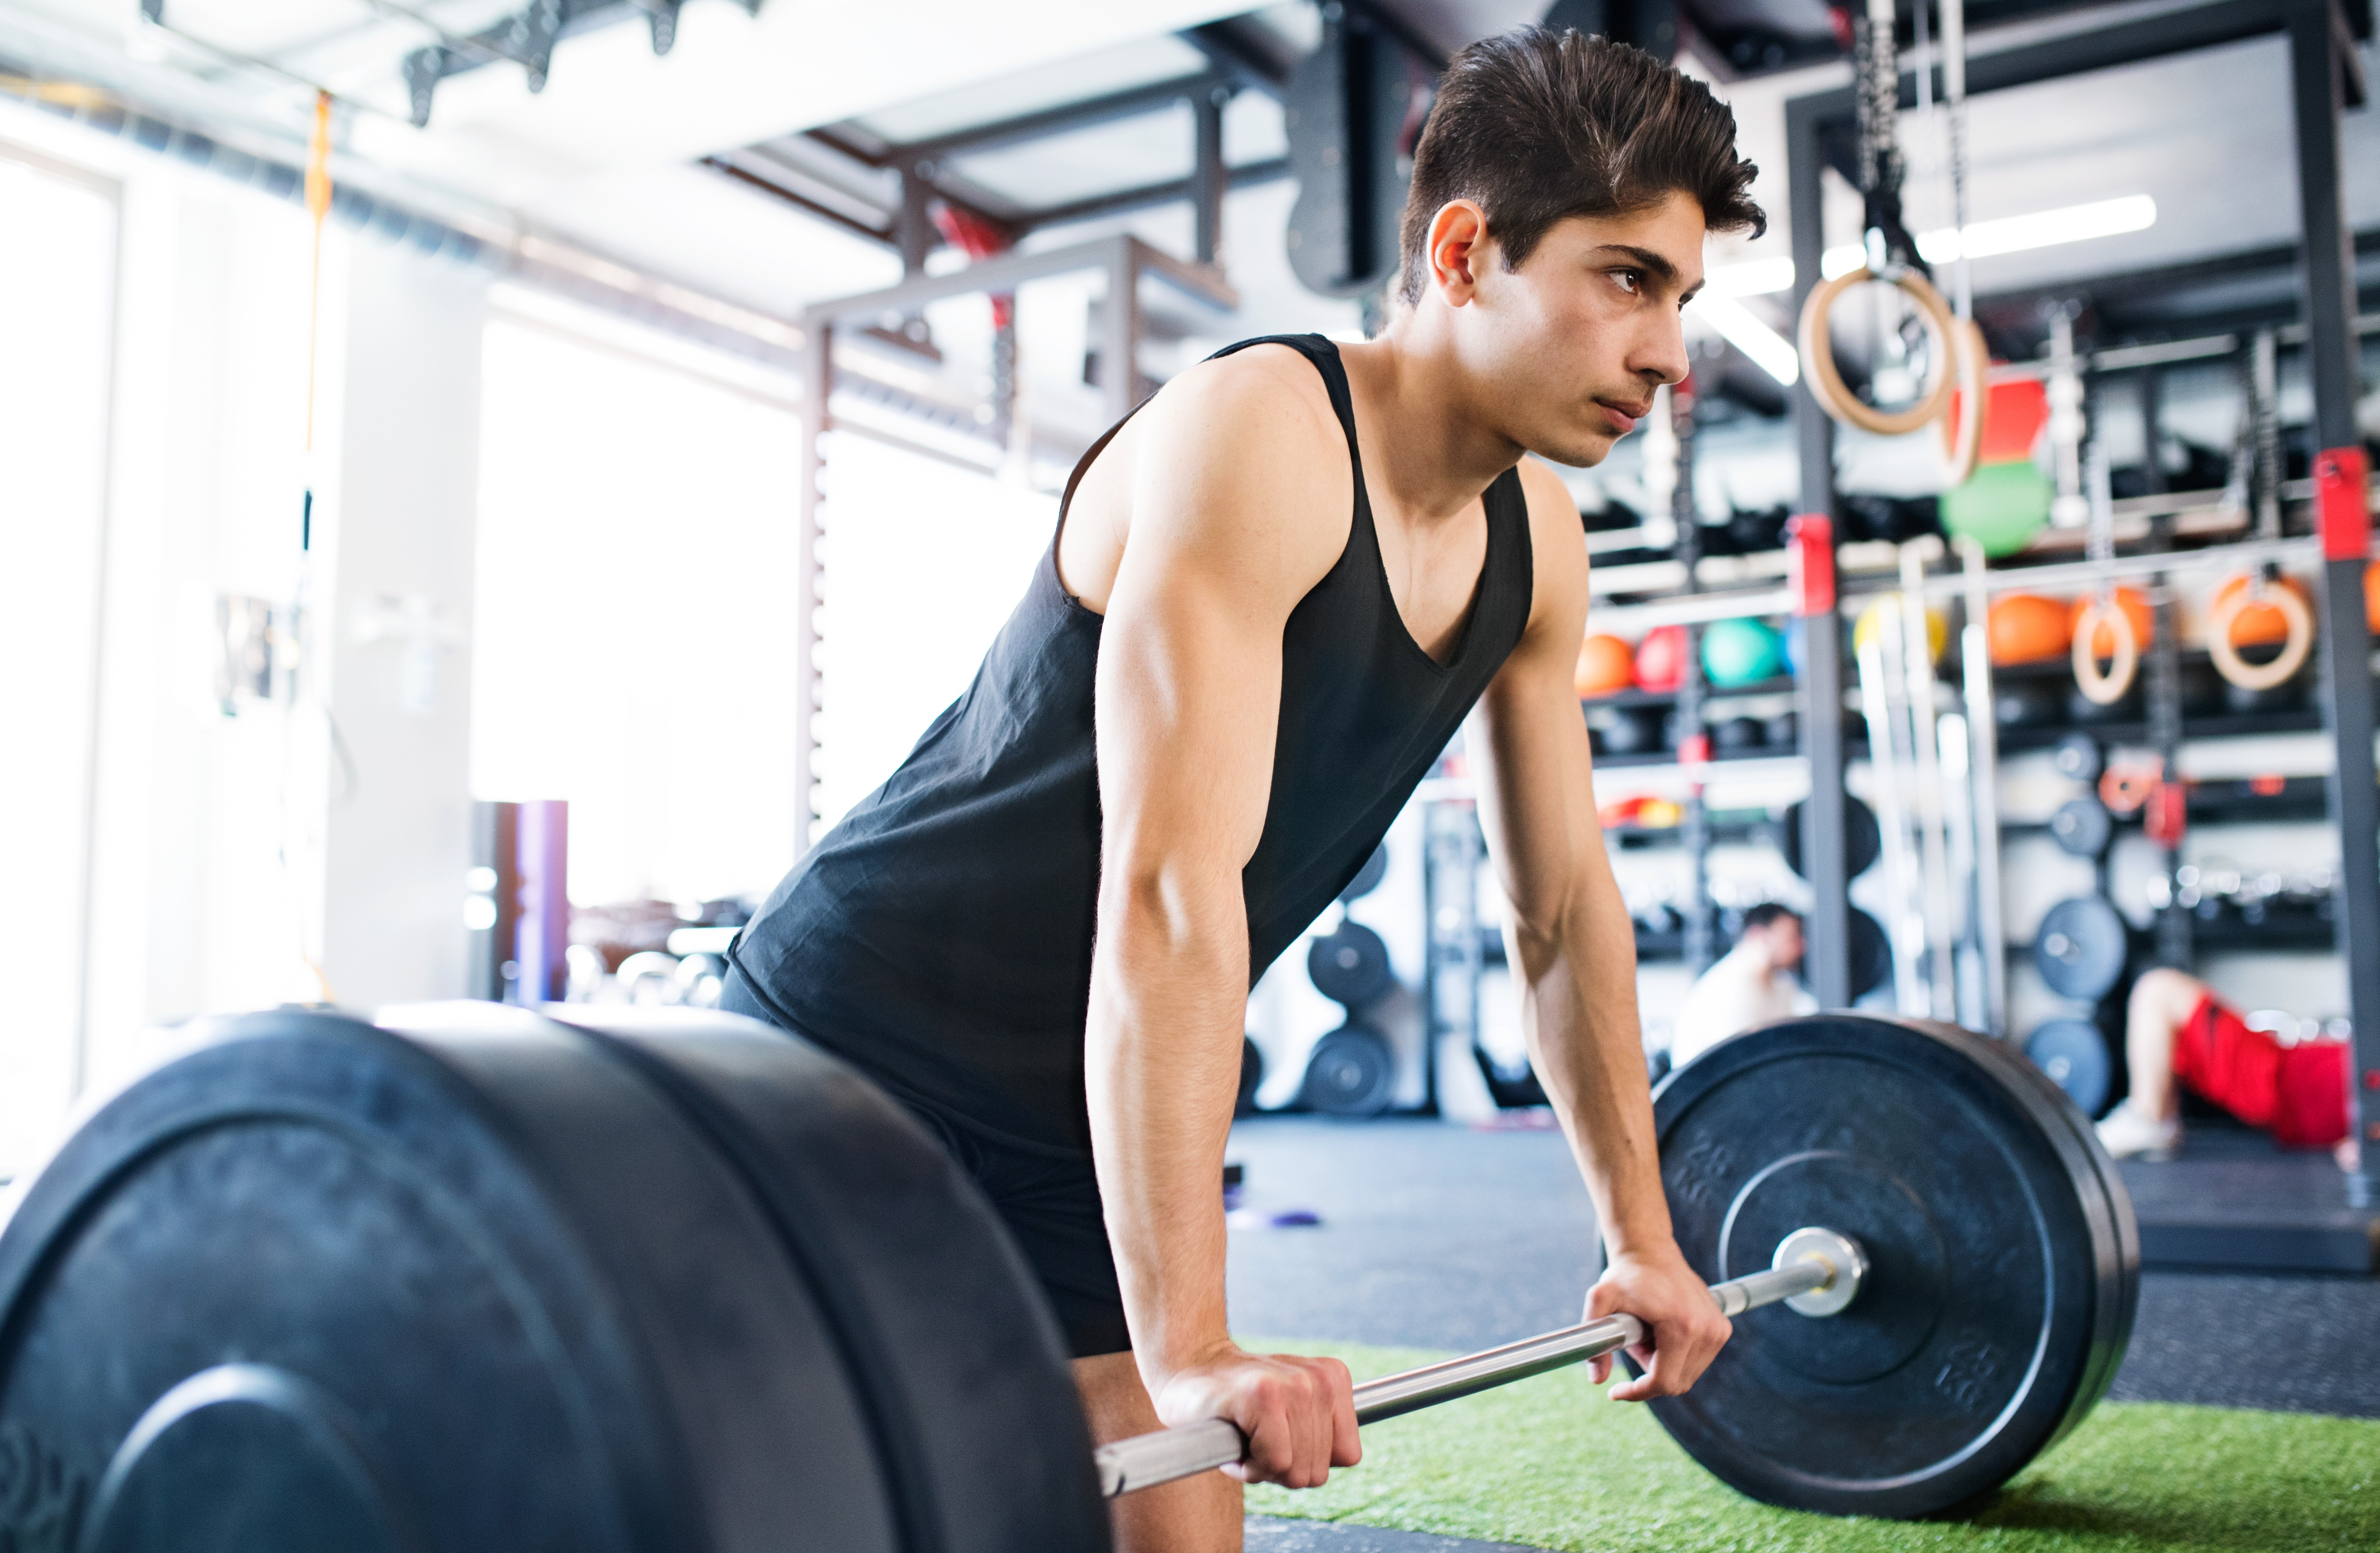 Young fit hispanic man in gym lifting heavy barbell, flexing muscles